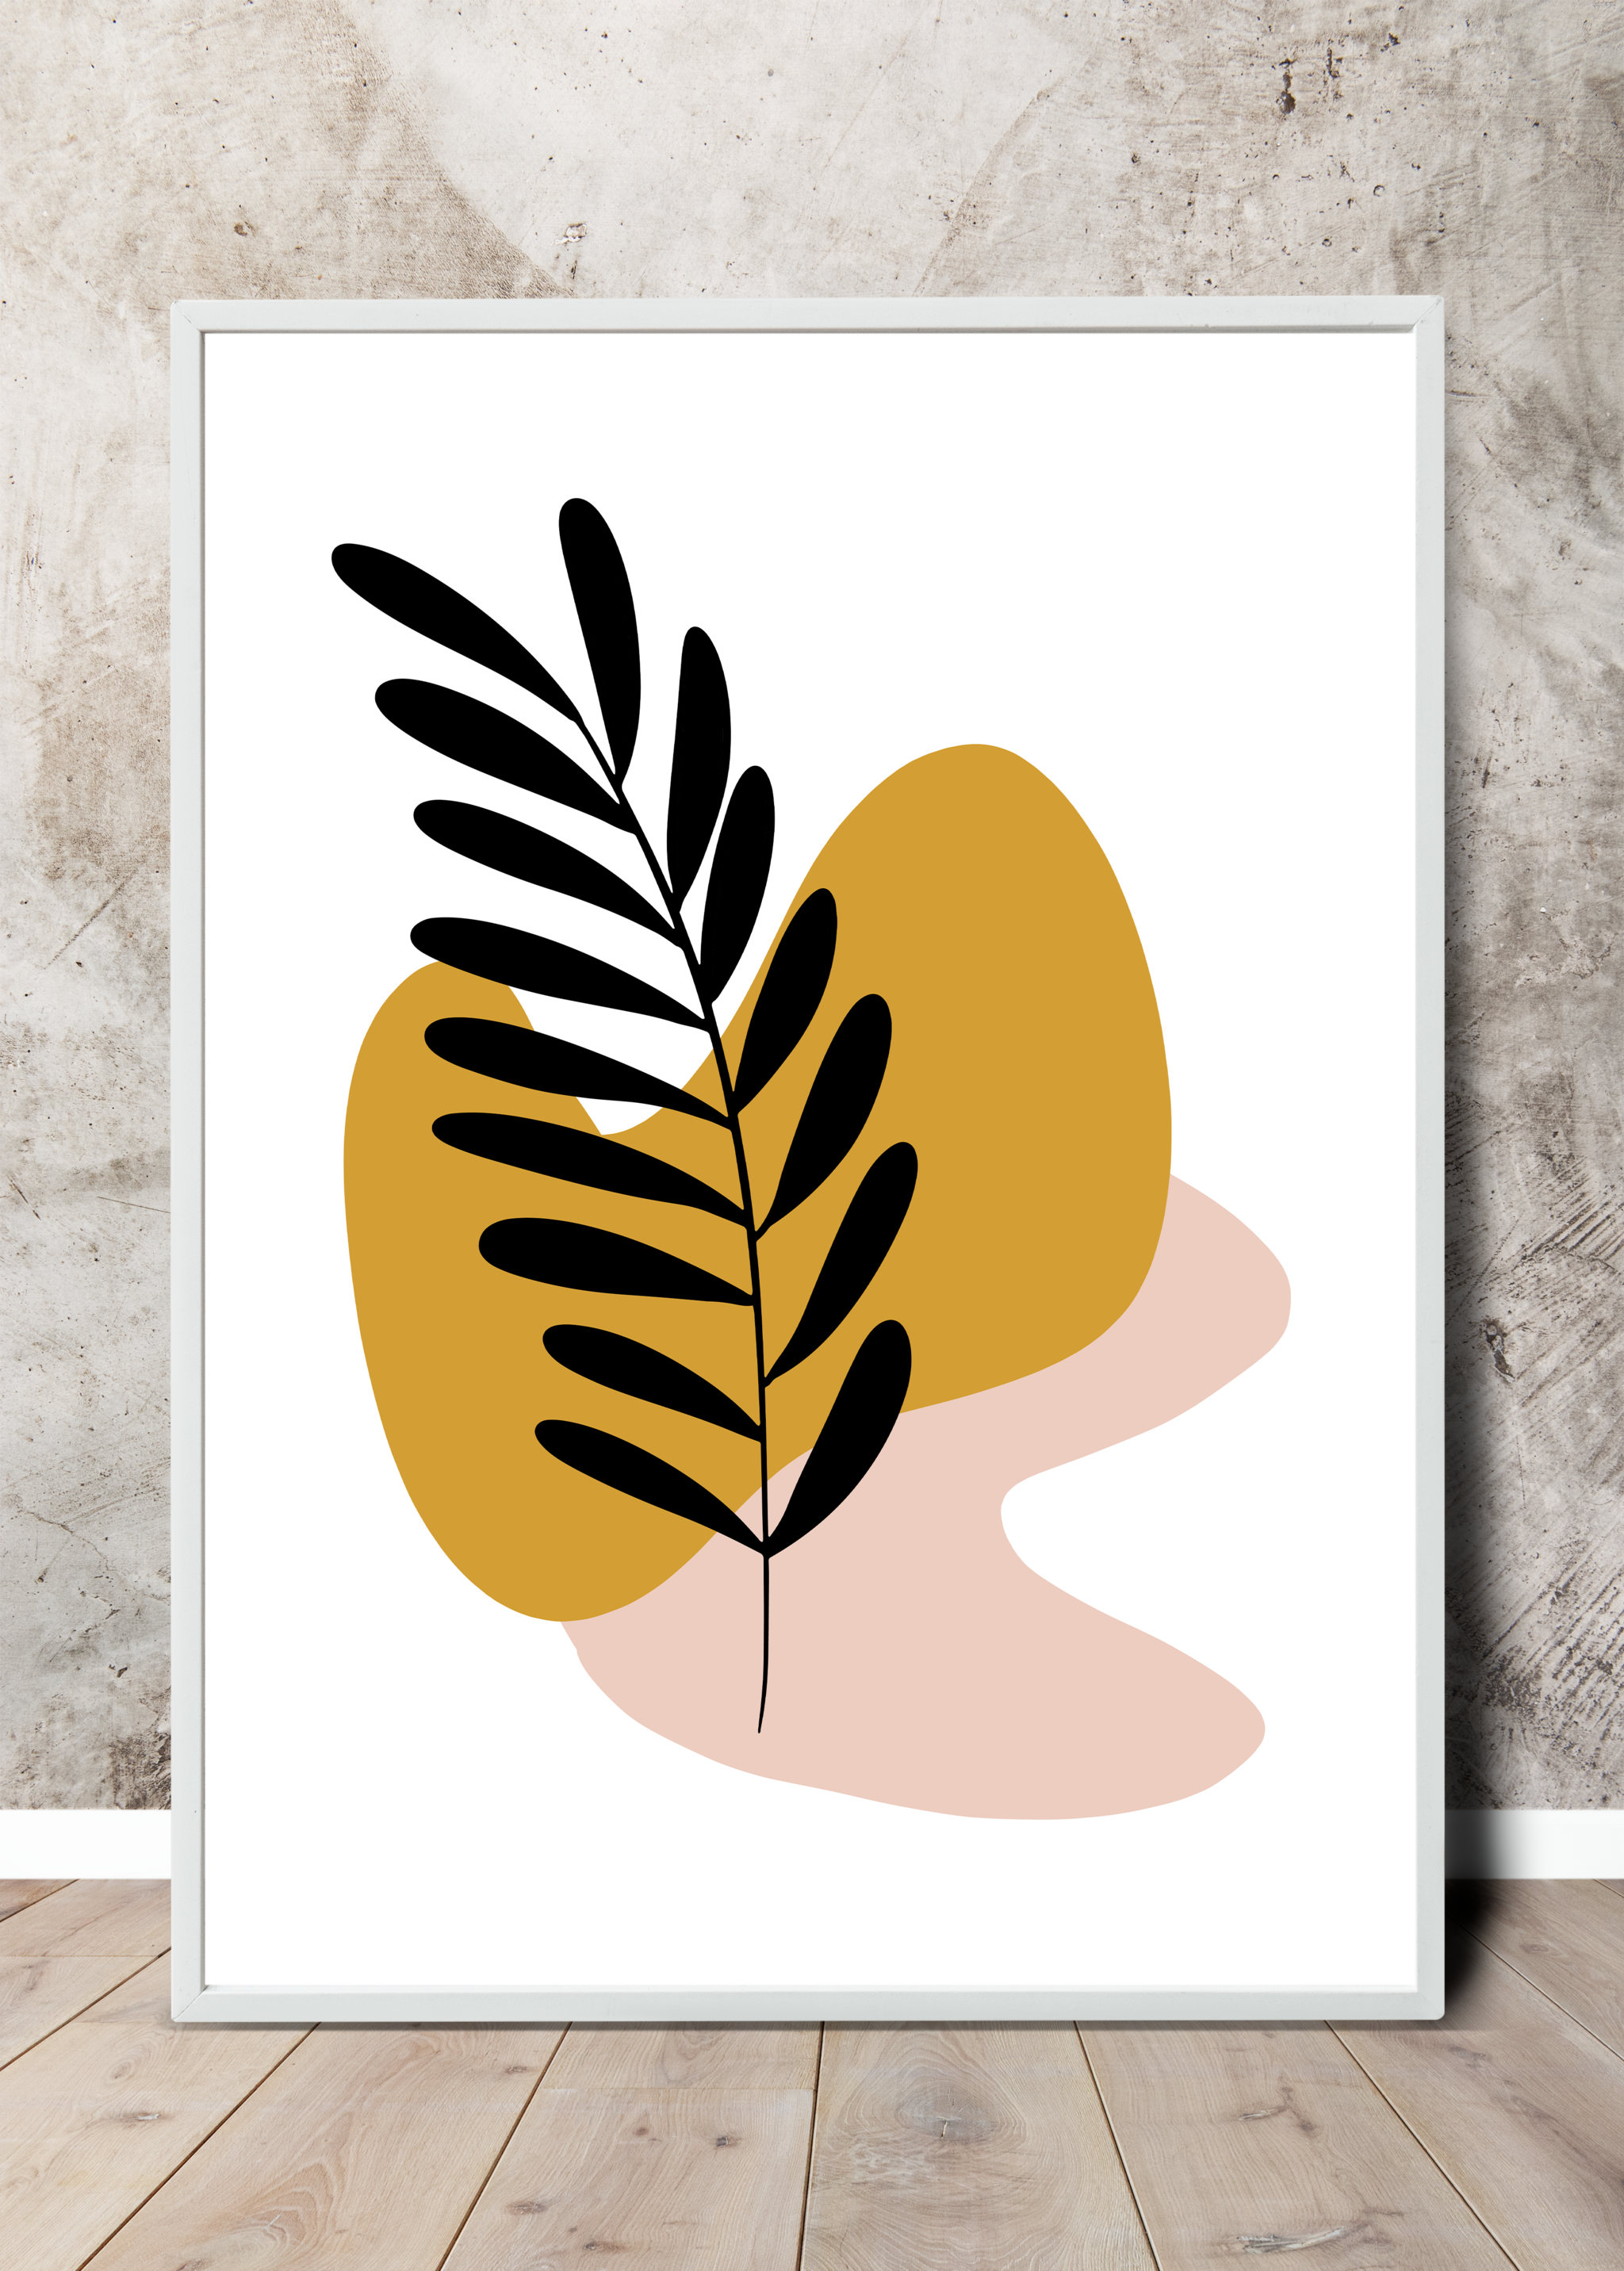 This one here is Botanical No 06, a free printable poster part of the Botanicals collection. Free for you too download, print and hang on your walls! Go ahead and add it to your cart, it'll be free at checkout!  This printable wall art is High Resolution and can be printed as big as 24inc x 36inc (300 DPI) with flawless gallery-like quality.